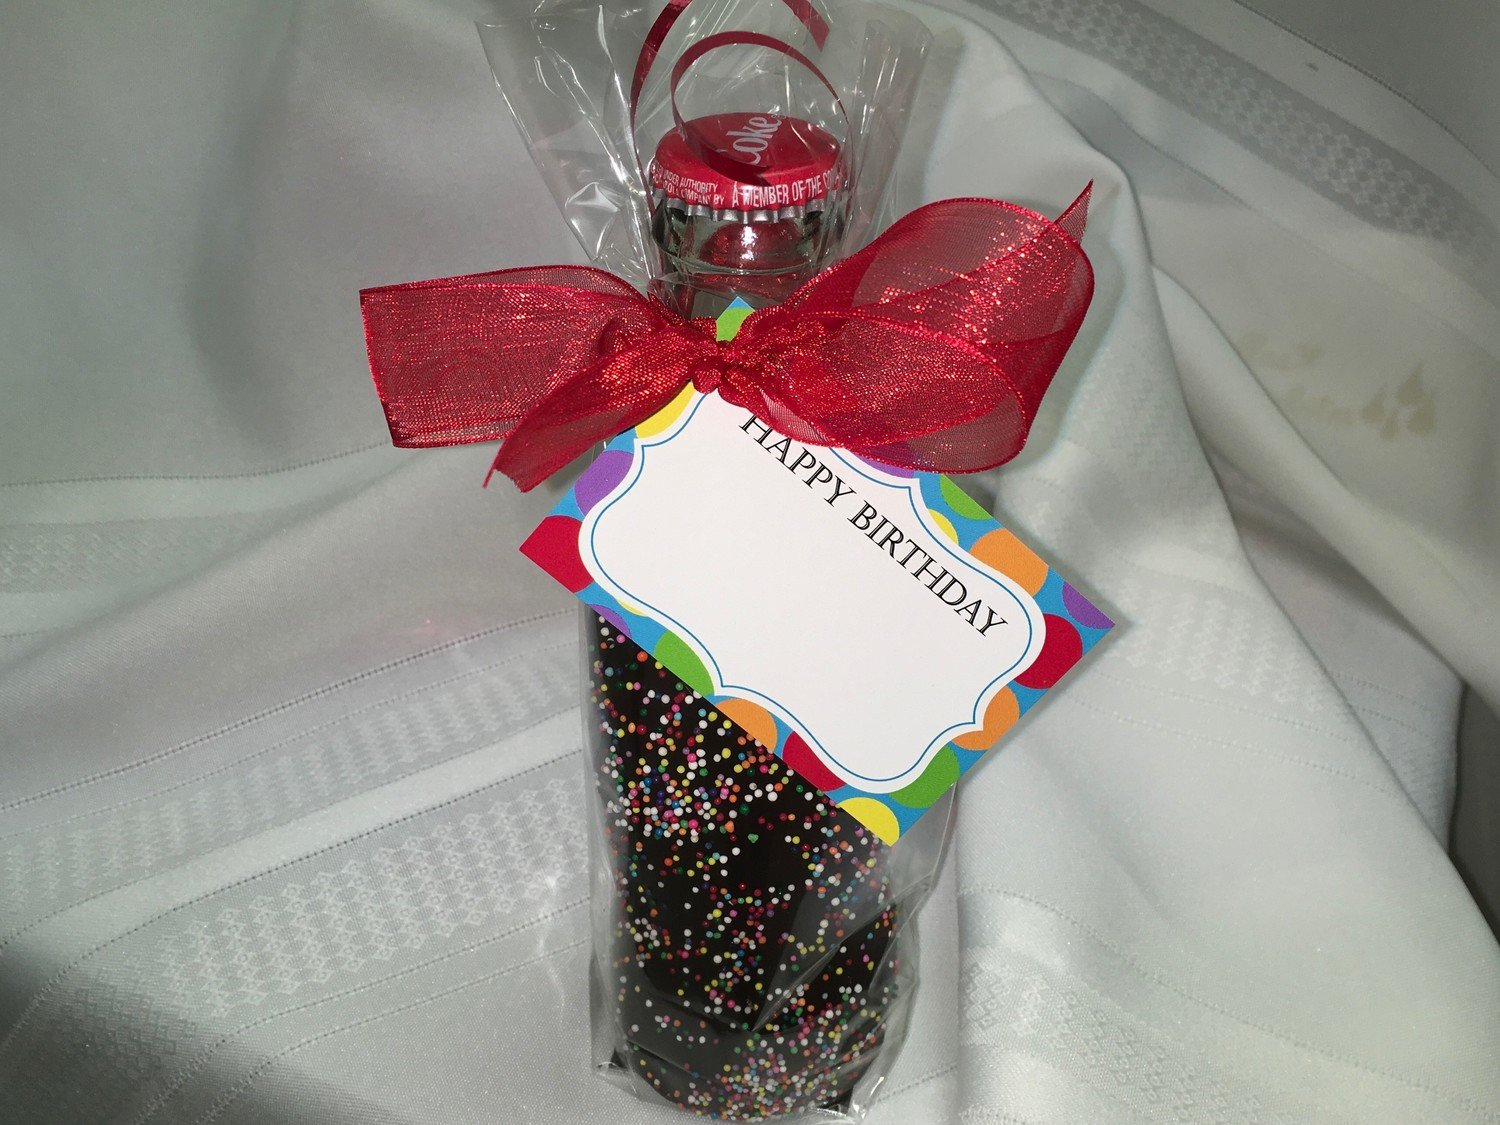 Chocolate Covered 8 ounce Beverage.  Easy Chocolate Removal.  Hand dipped in our Chocolate Kettle. Tag included.